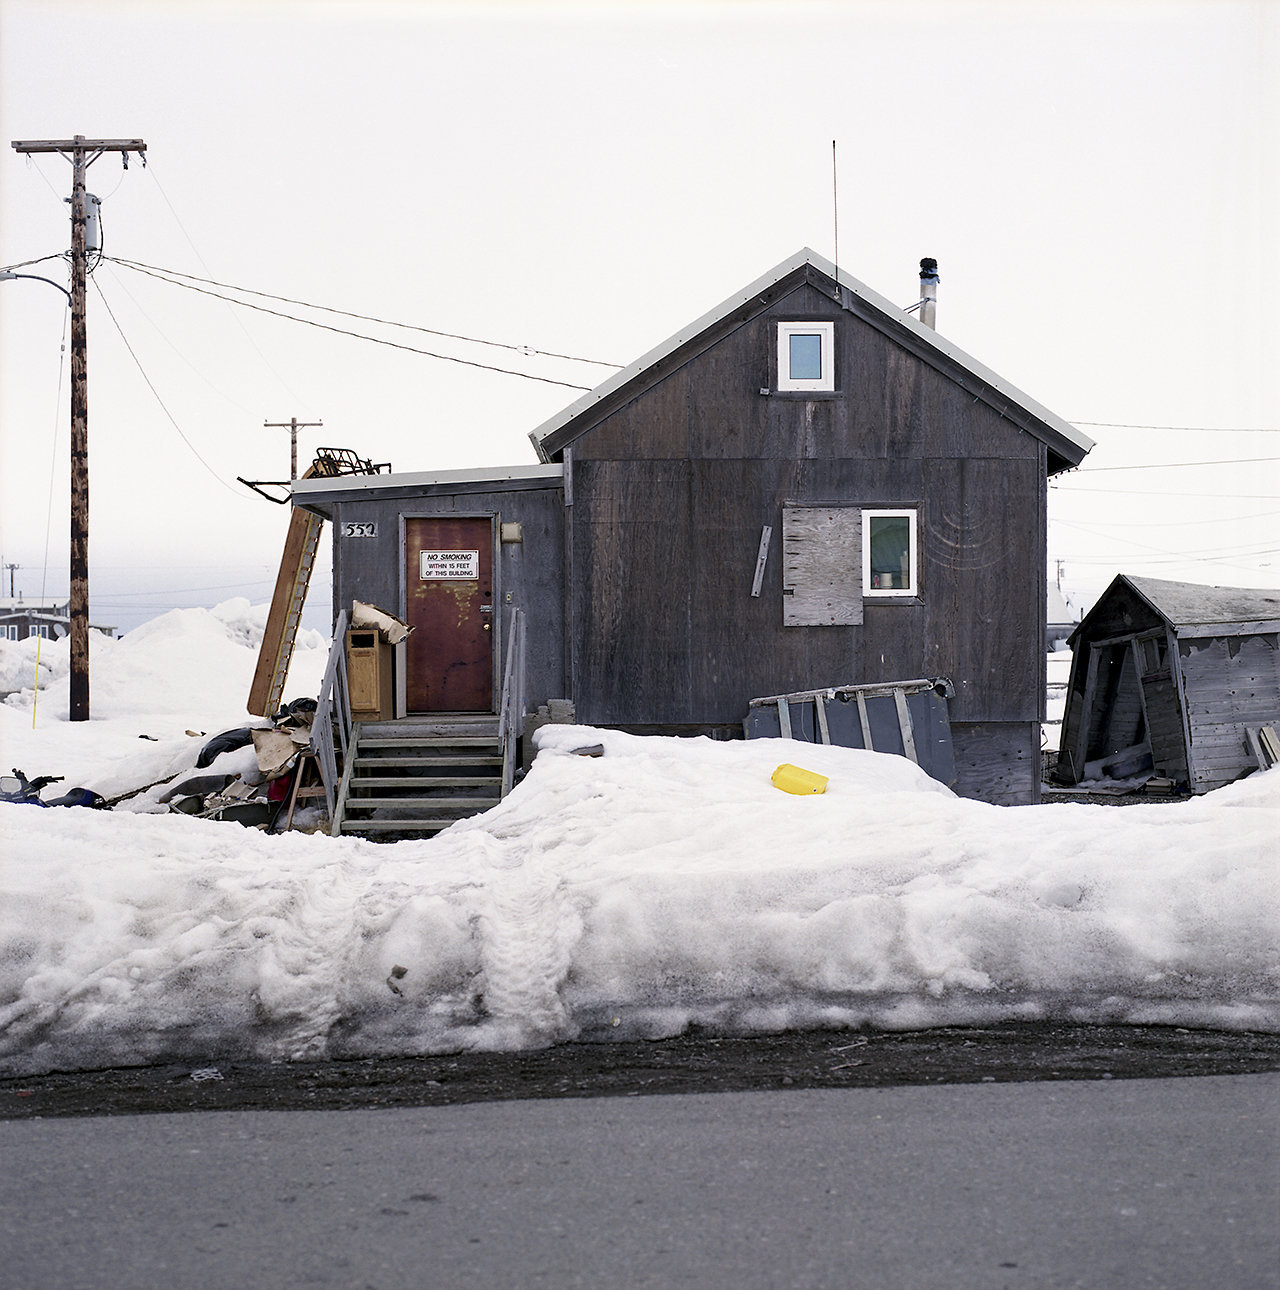 Iglu is the Inuit word for house, 2009